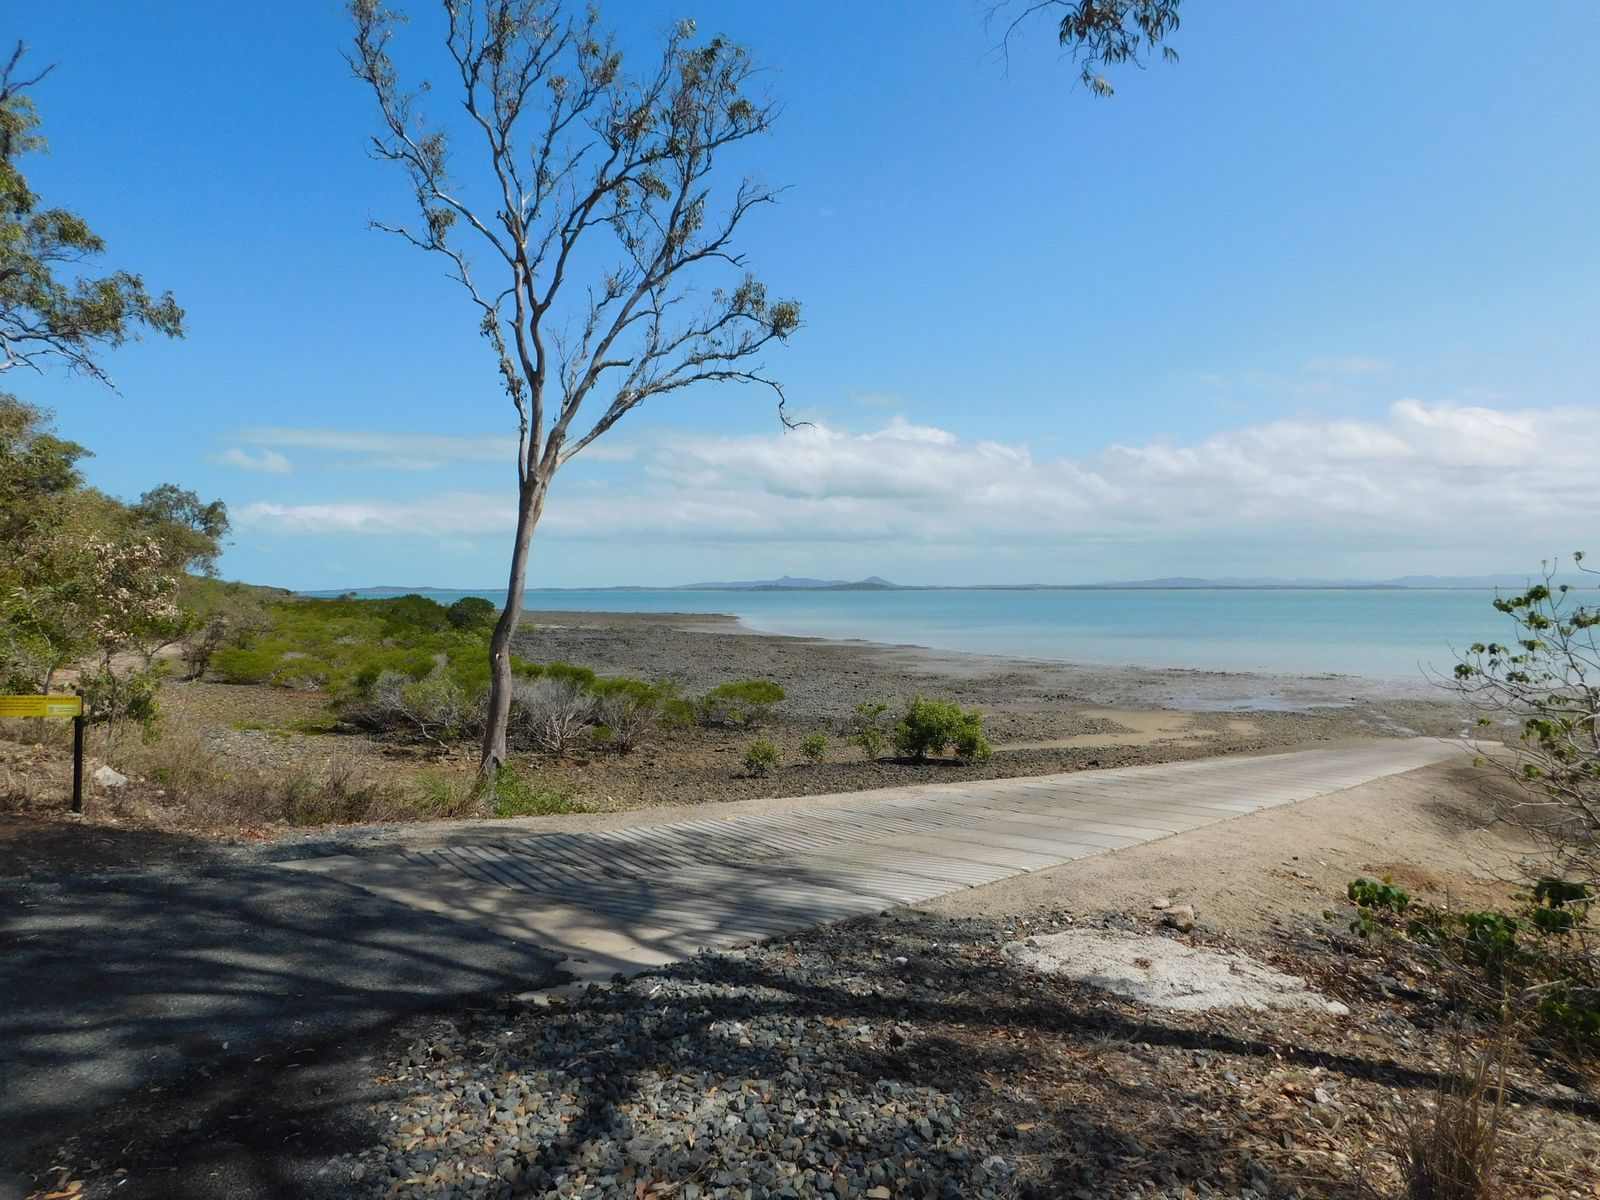 15 Fleetwood Court, Freshwater Point, QLD 4737